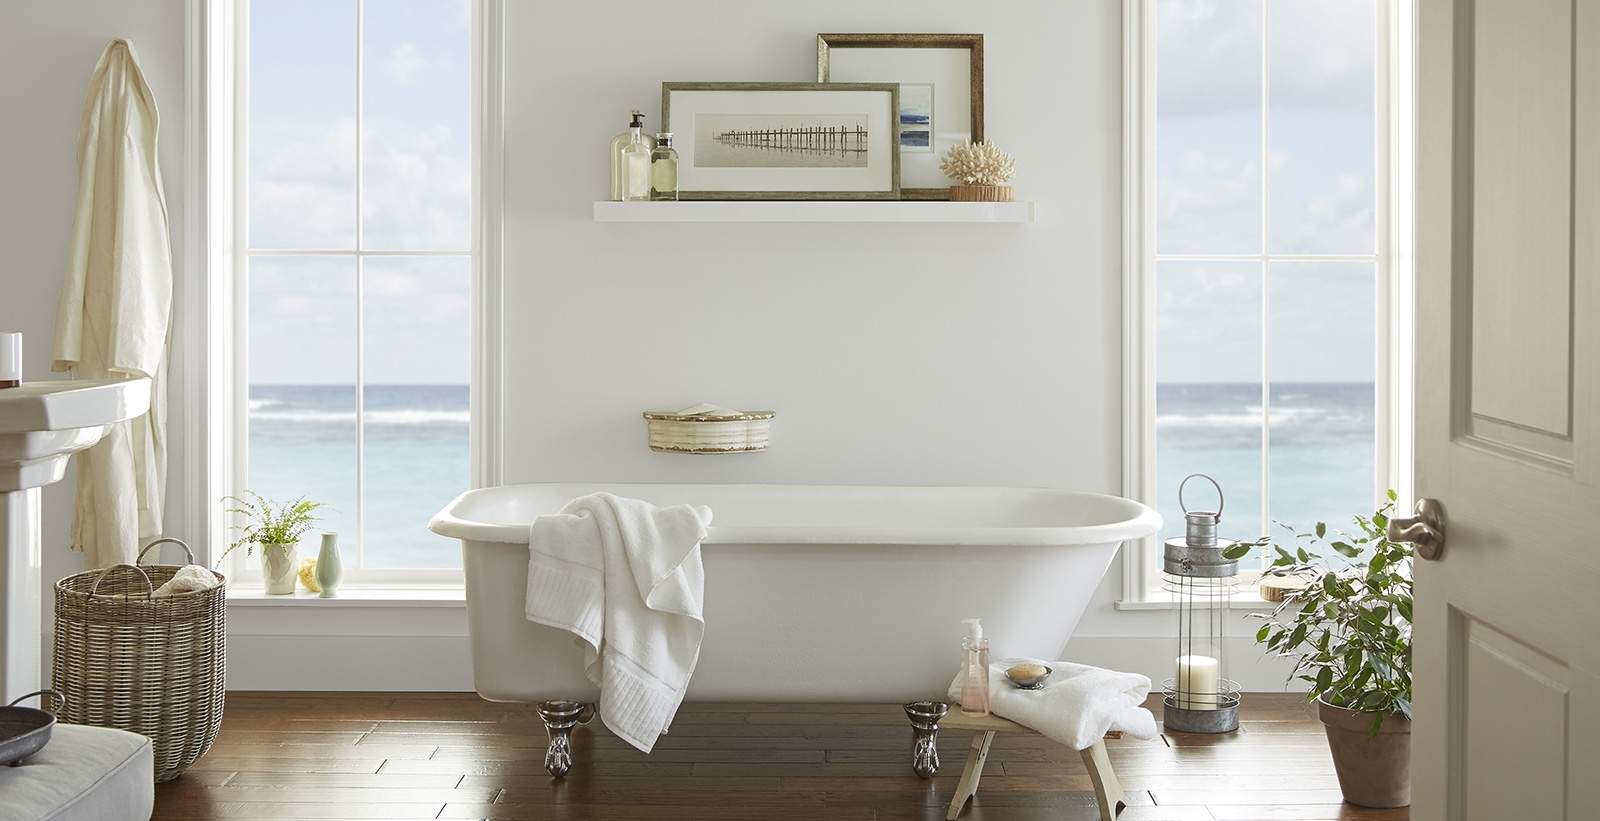 Casual Bathroom Ideas And Inspirational Paint Colors | Behr Behr Bathroom Color